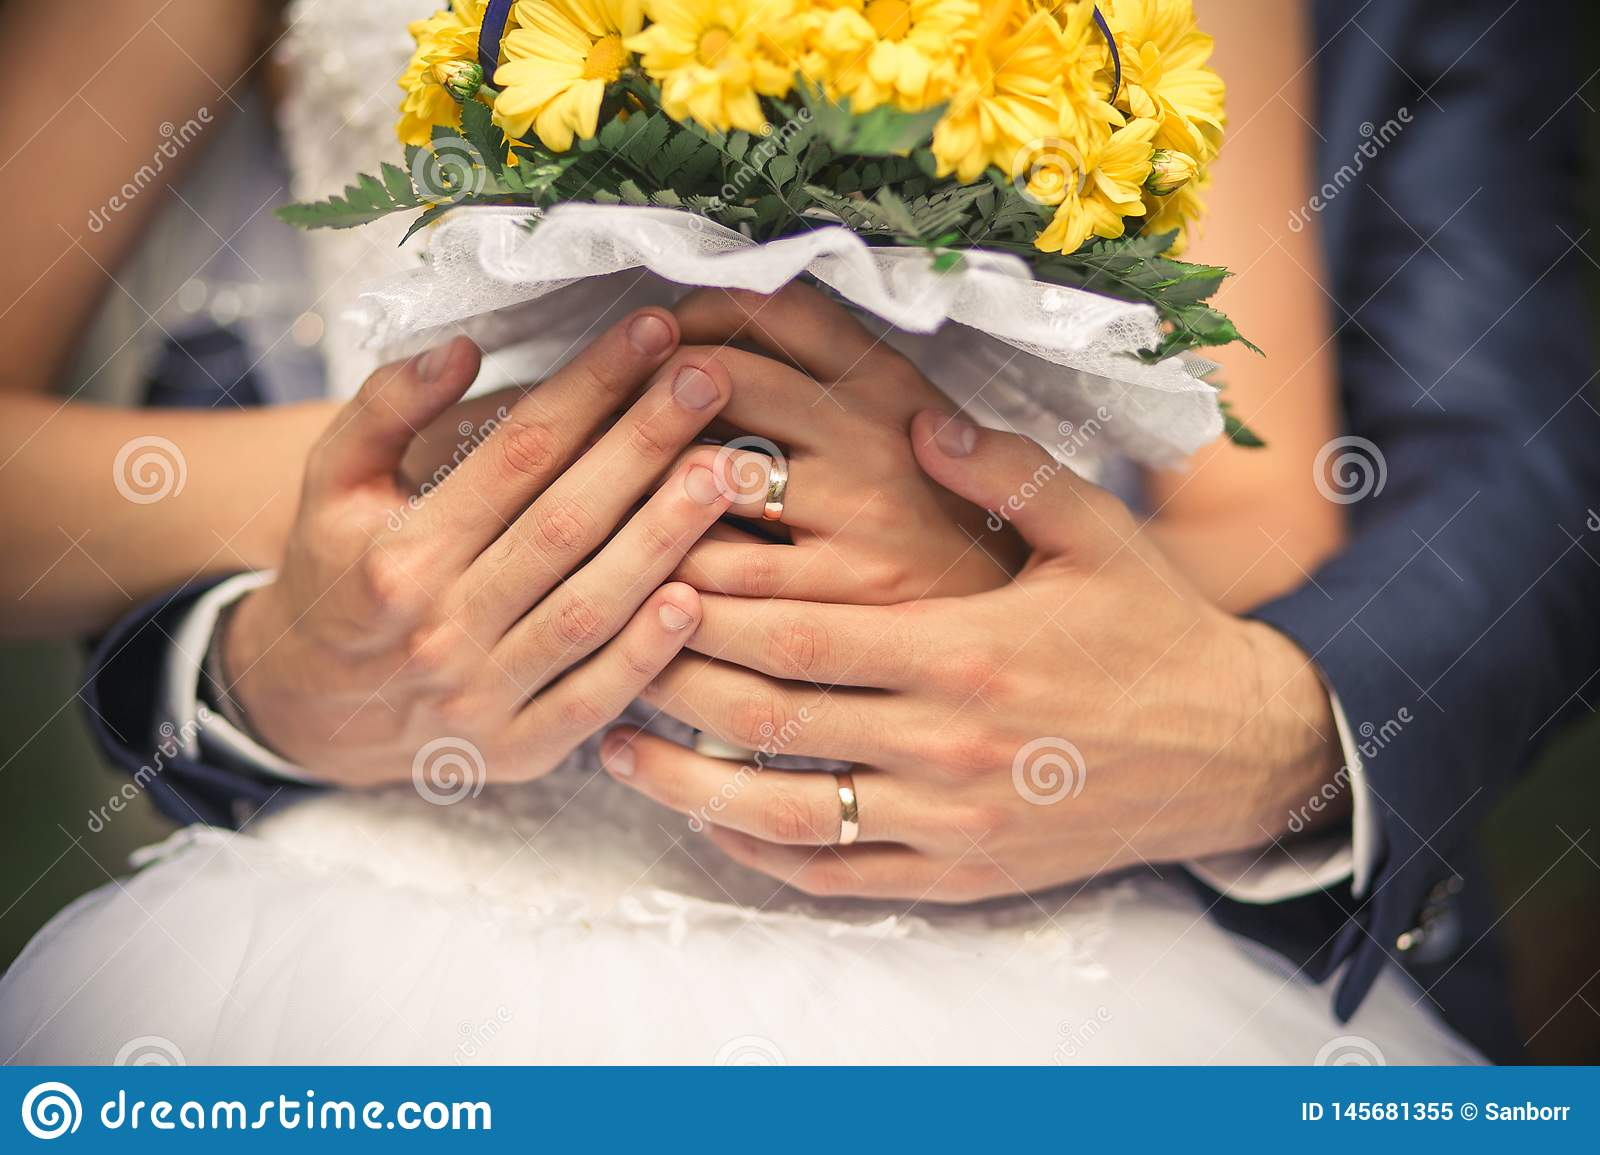 Hands of the bride and groom close-up. They have wedding rings on their fingers. The bride is holding a beautiful yellow bouquet